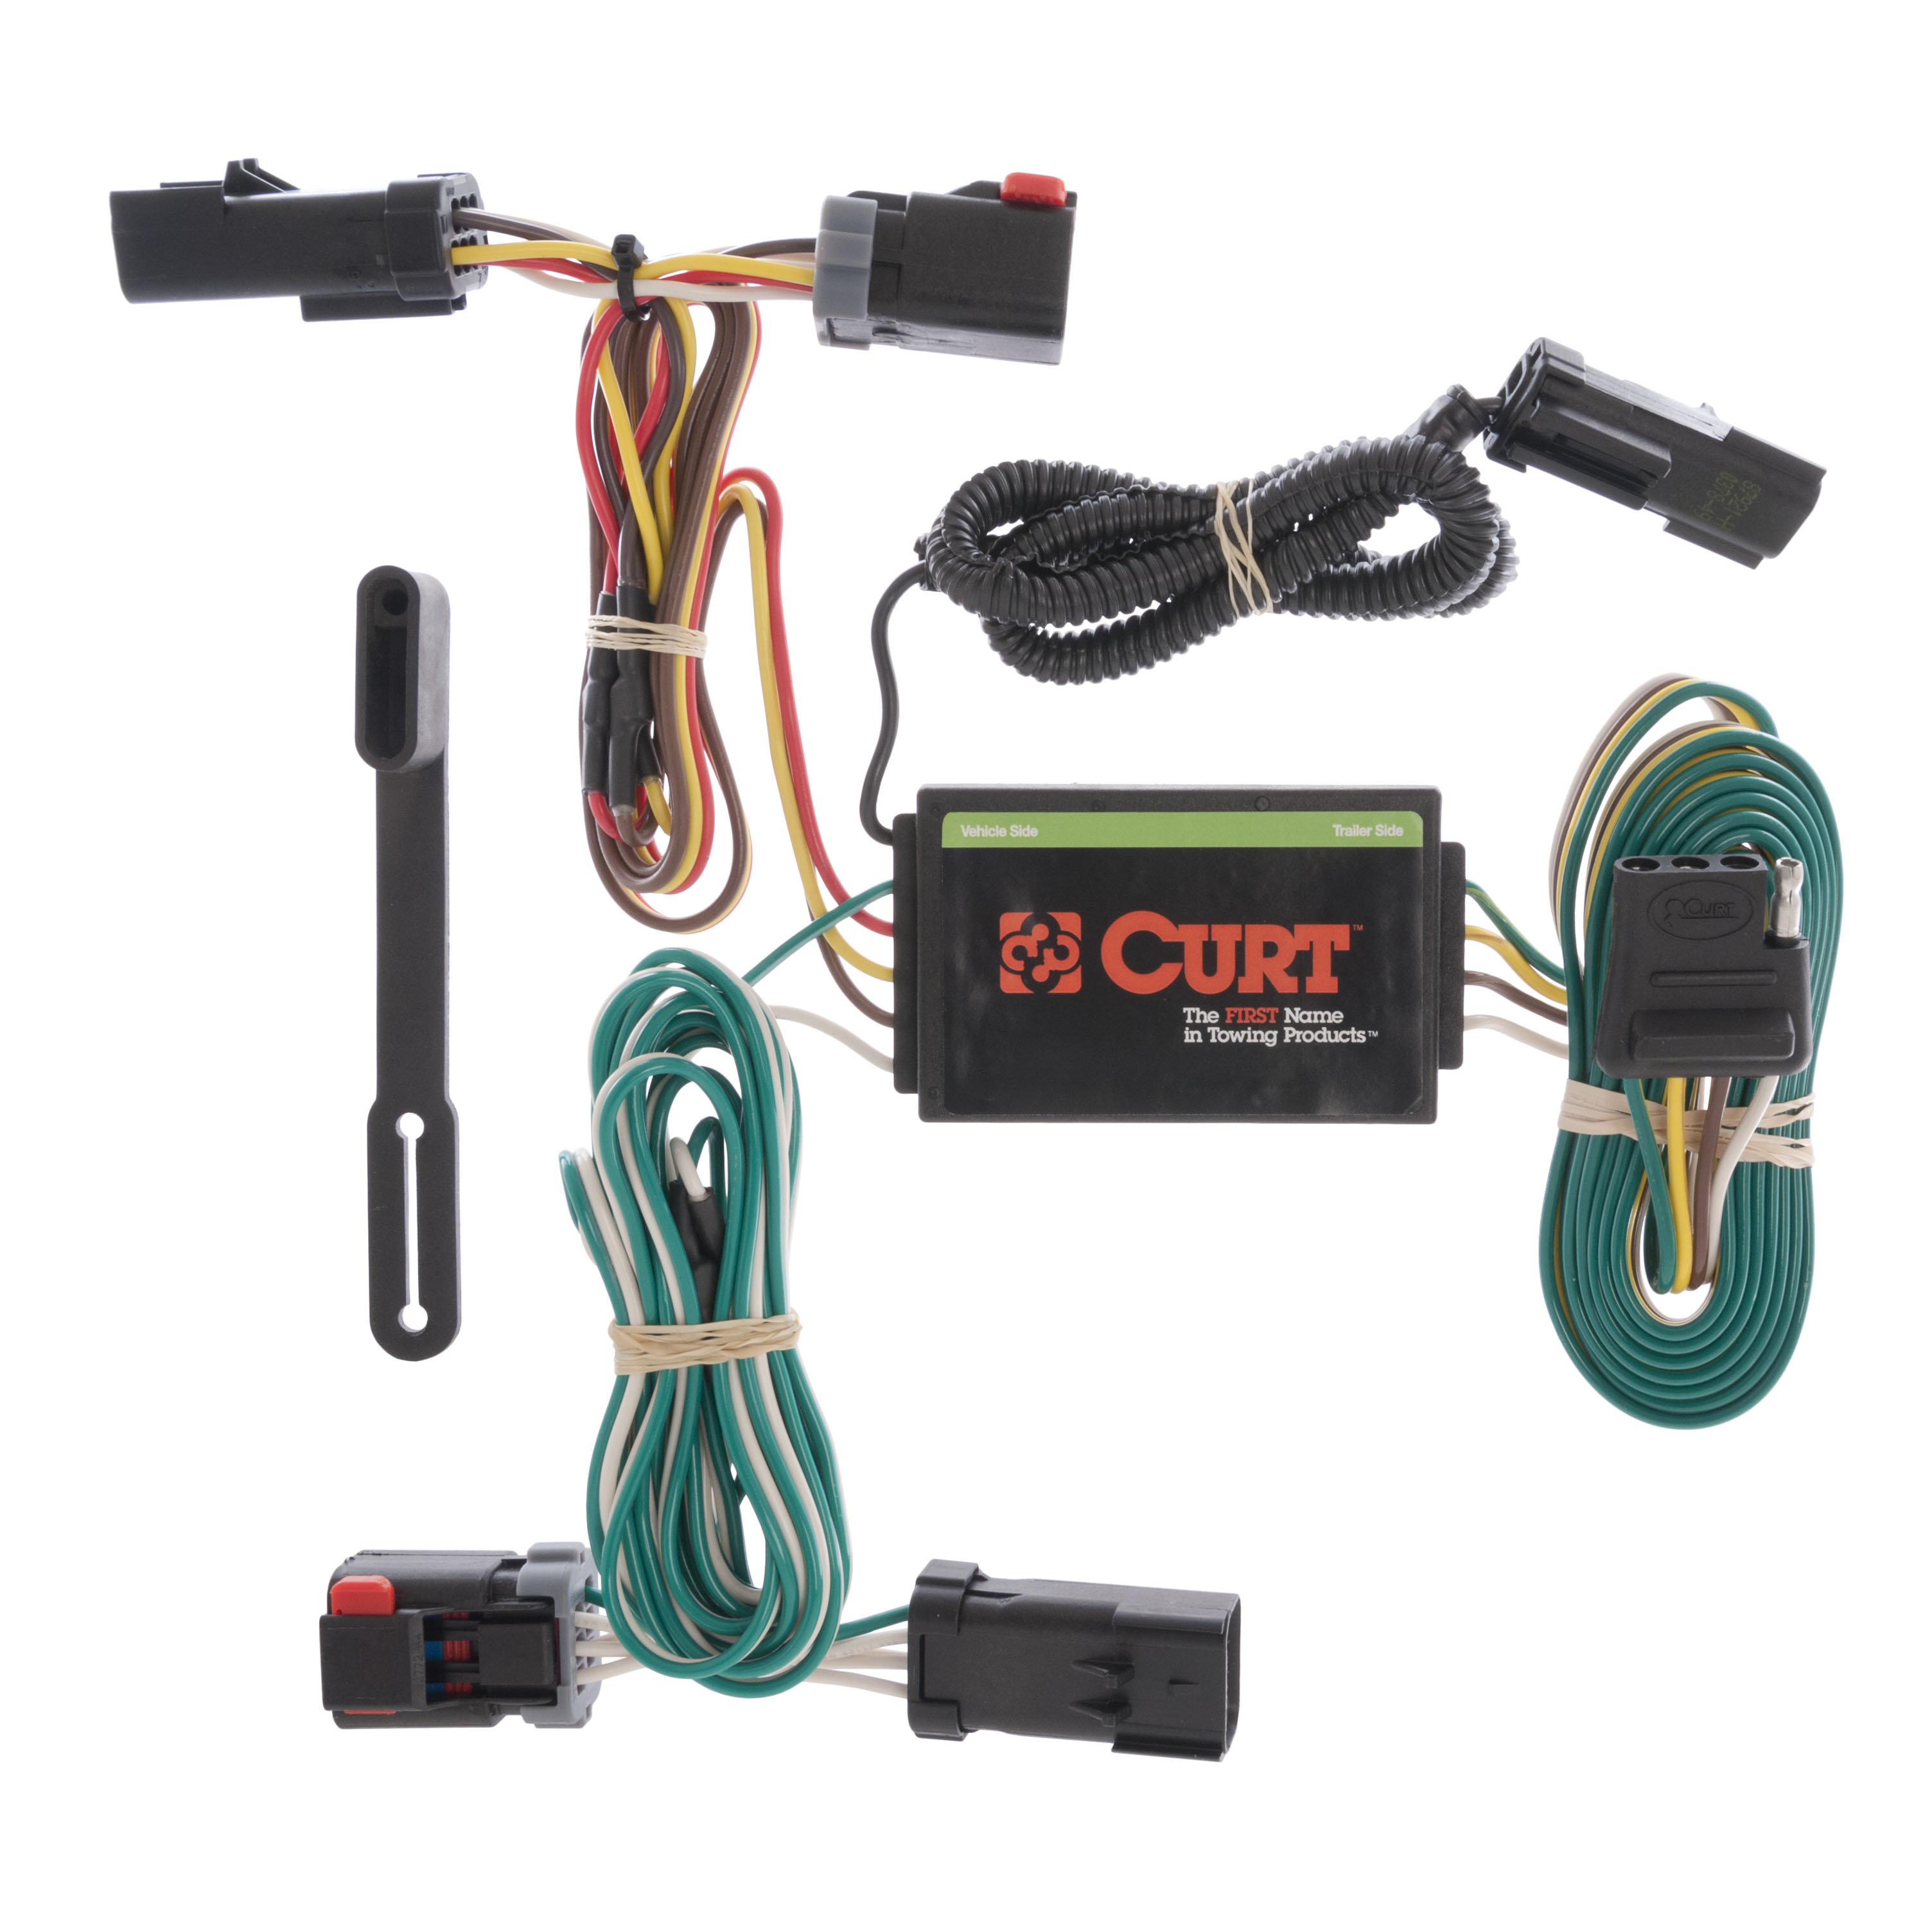 2007 Chrysler Pacifica Trailer Wiring Harness Electrical Diagram As Well All Products For Black